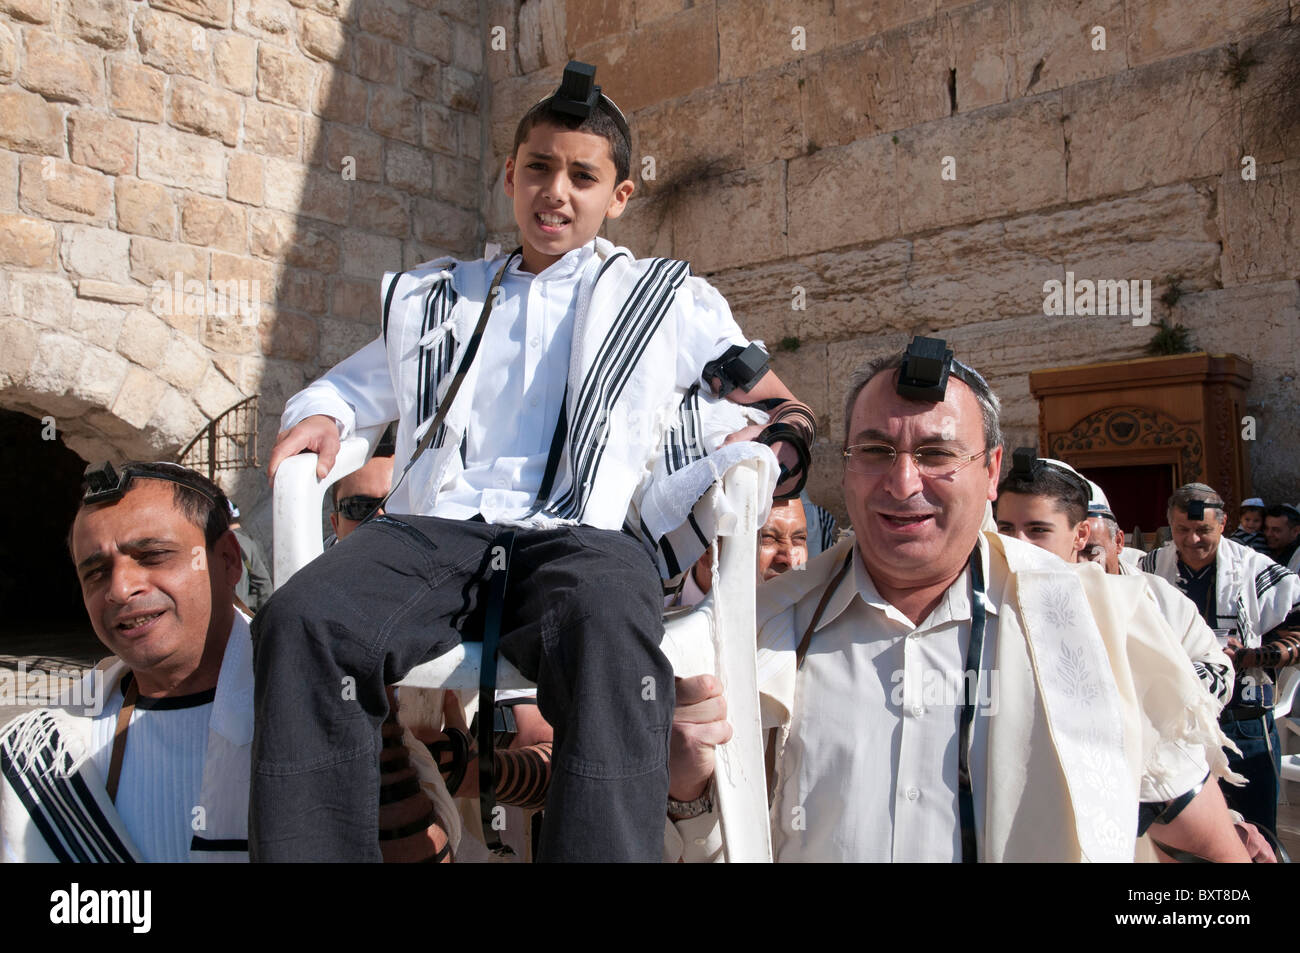 Western Wall. youngster being lifted on a chair during his Bar Mitzvah ceremony. Jerusalem Old City - Stock Image